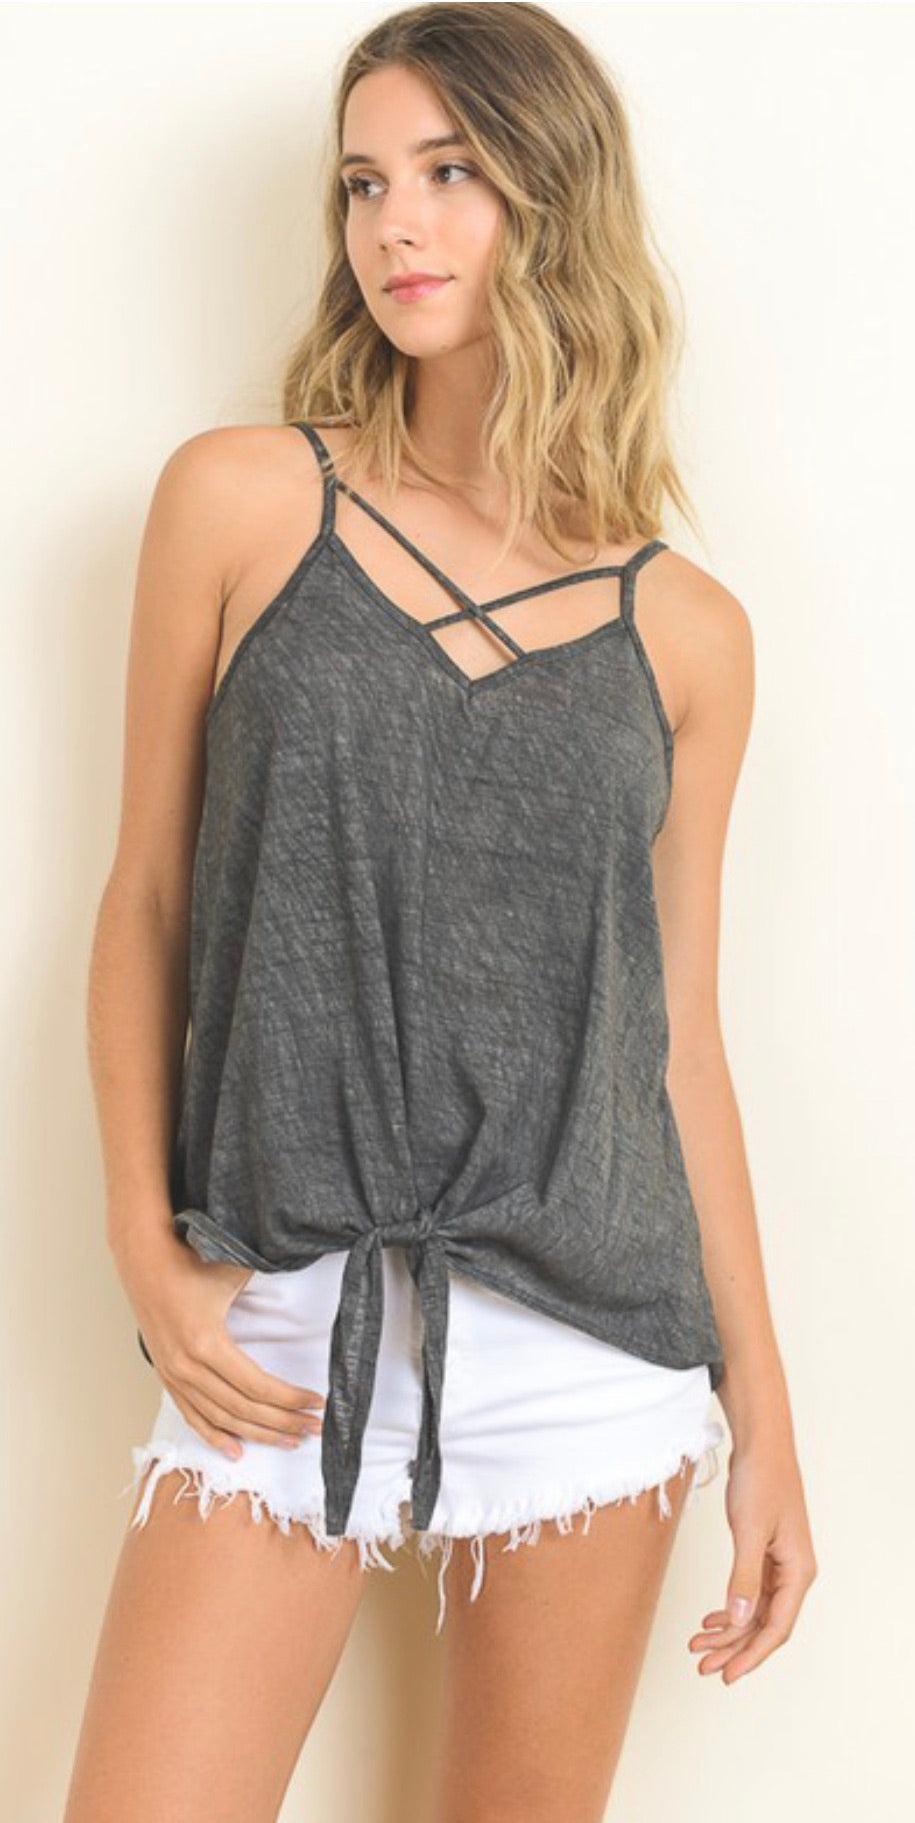 Mineral Washed Criss-Cross Sleeveless Top